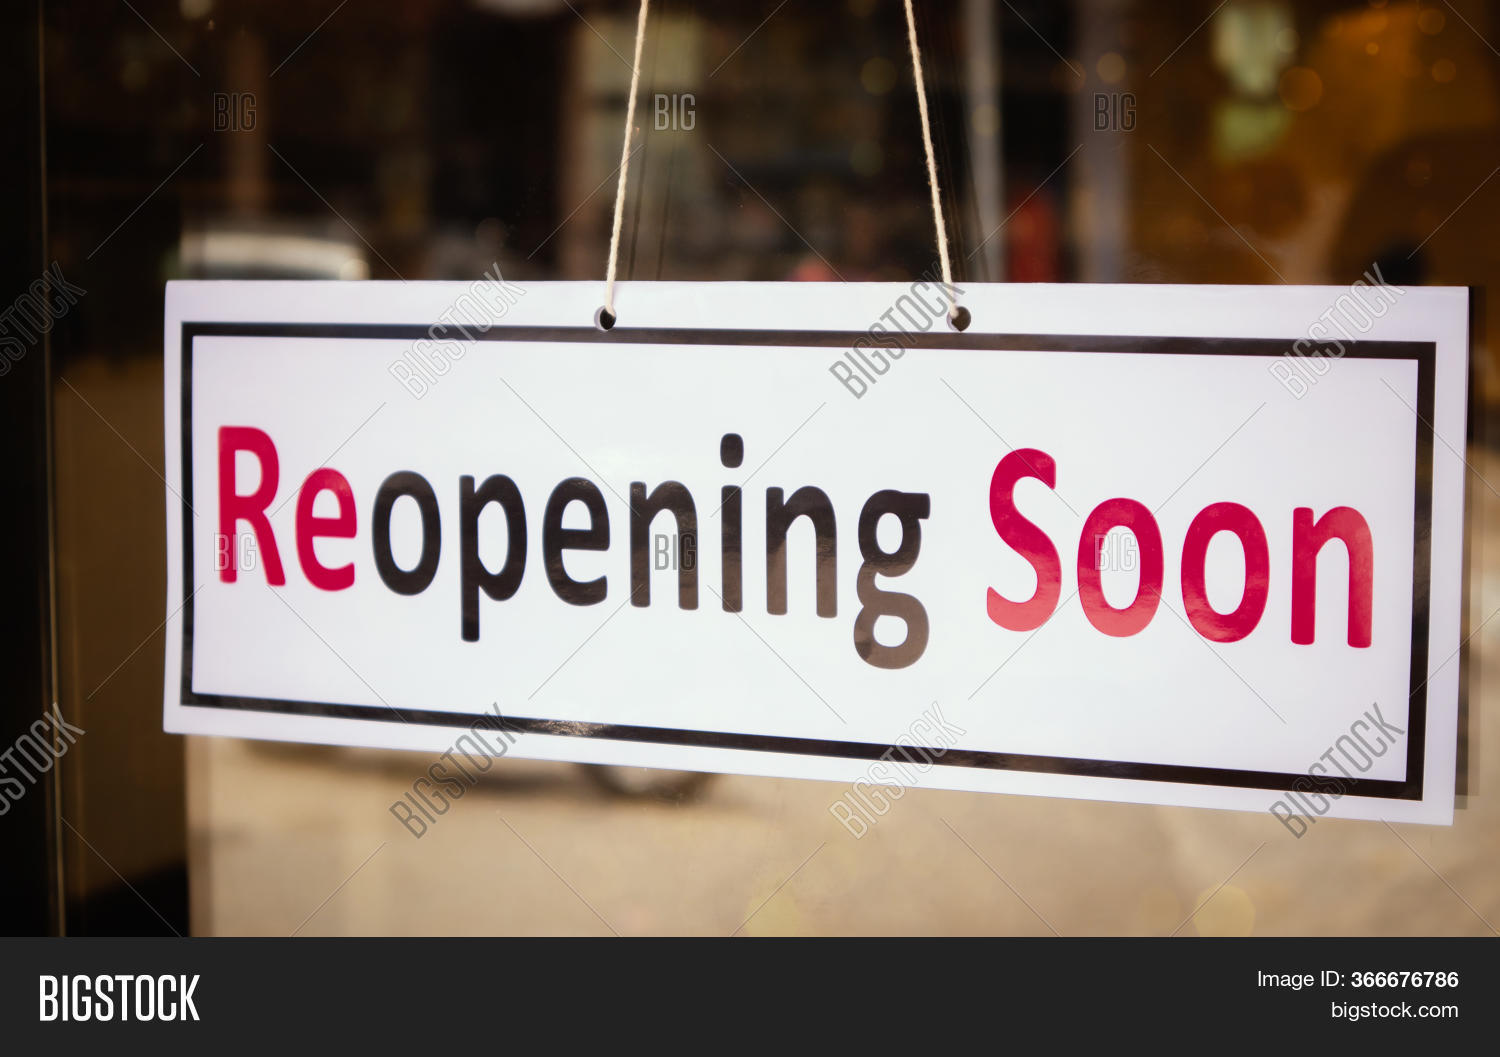 Reopening Soon Signage Board In Front Of Businesses Or Restaurant Door After Covid-19 Or Coronavirus